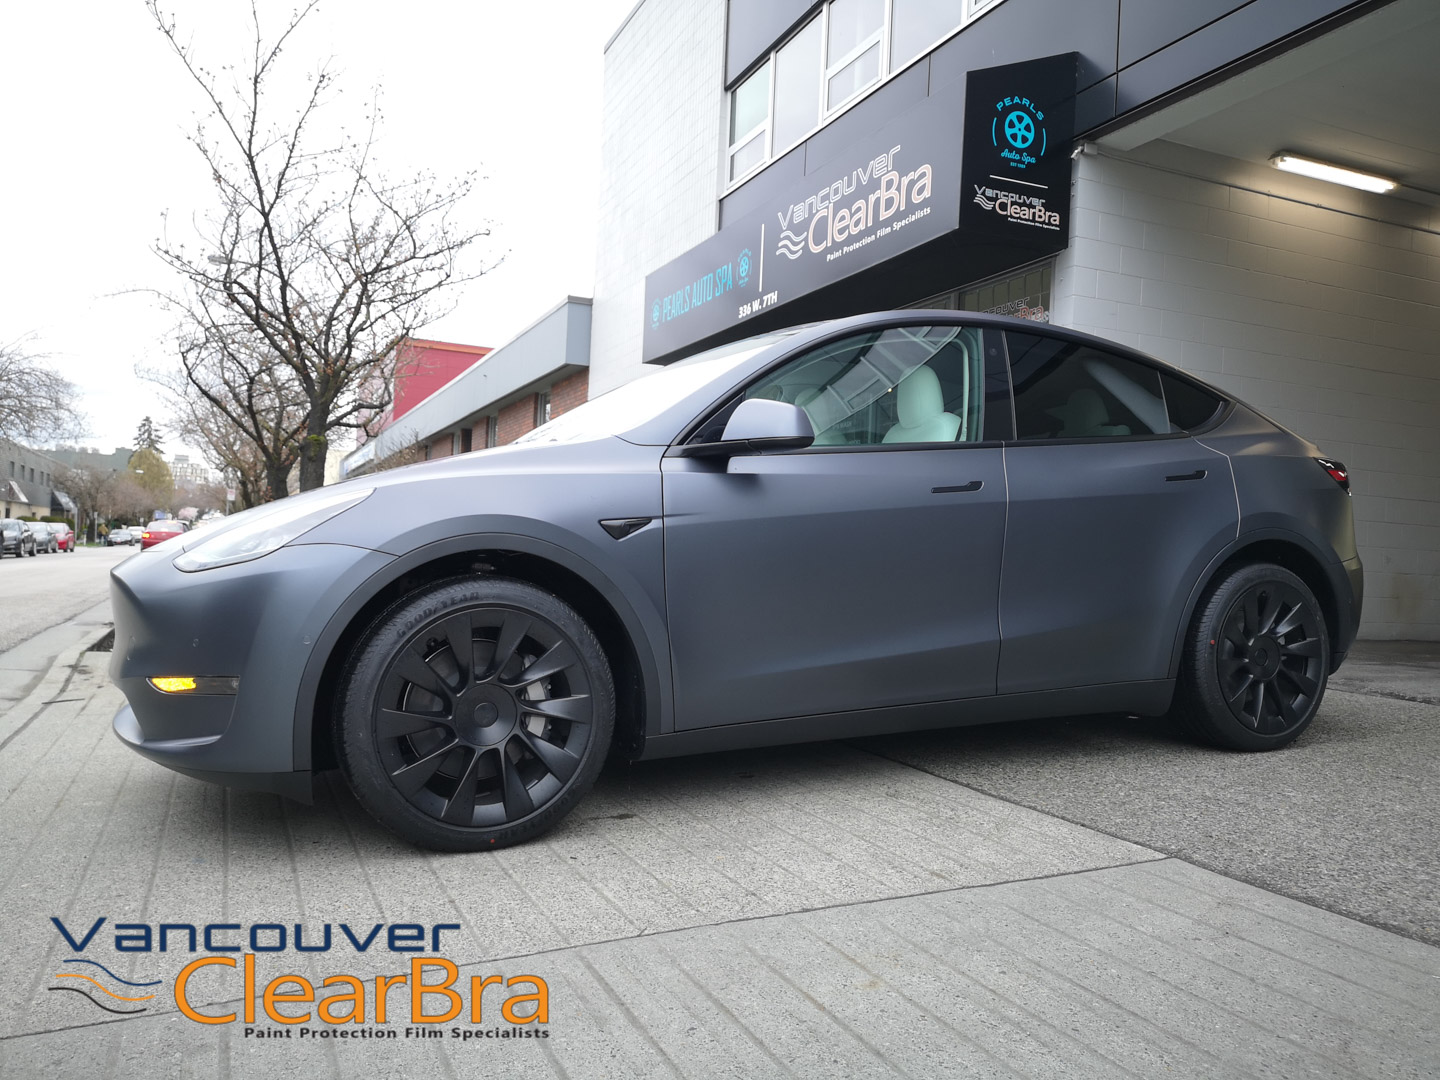 xpel-ultimate-xpel-stealth-satin-clear-bra-paint-protection-film-Vancouver-ClearBra-229.jpg